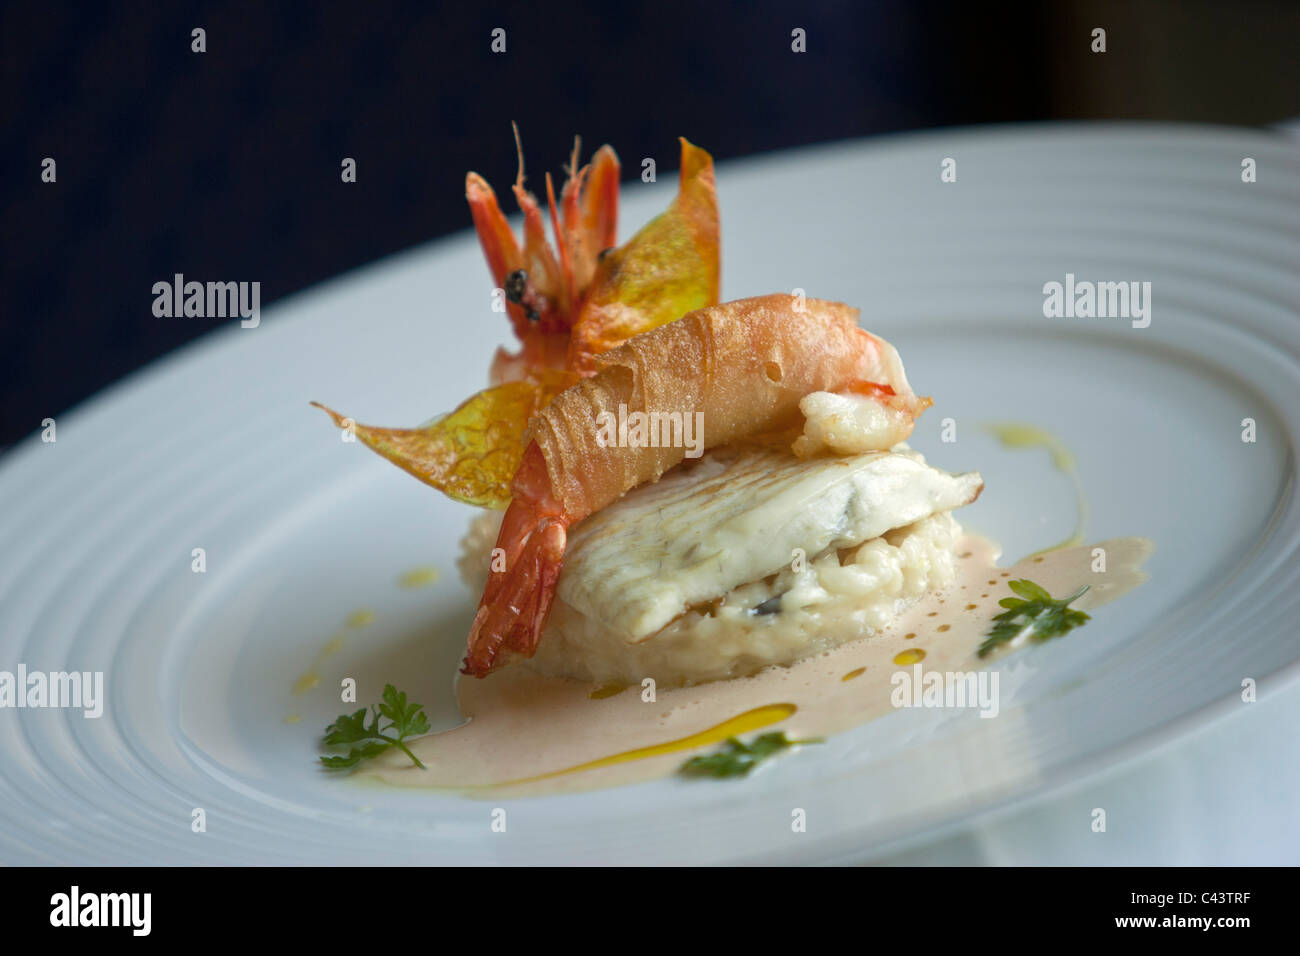 Nouvelle cuisine gourmet fish and seafood dish stock photo royalty free image 36964691 alamy for Nouvelle cuisine